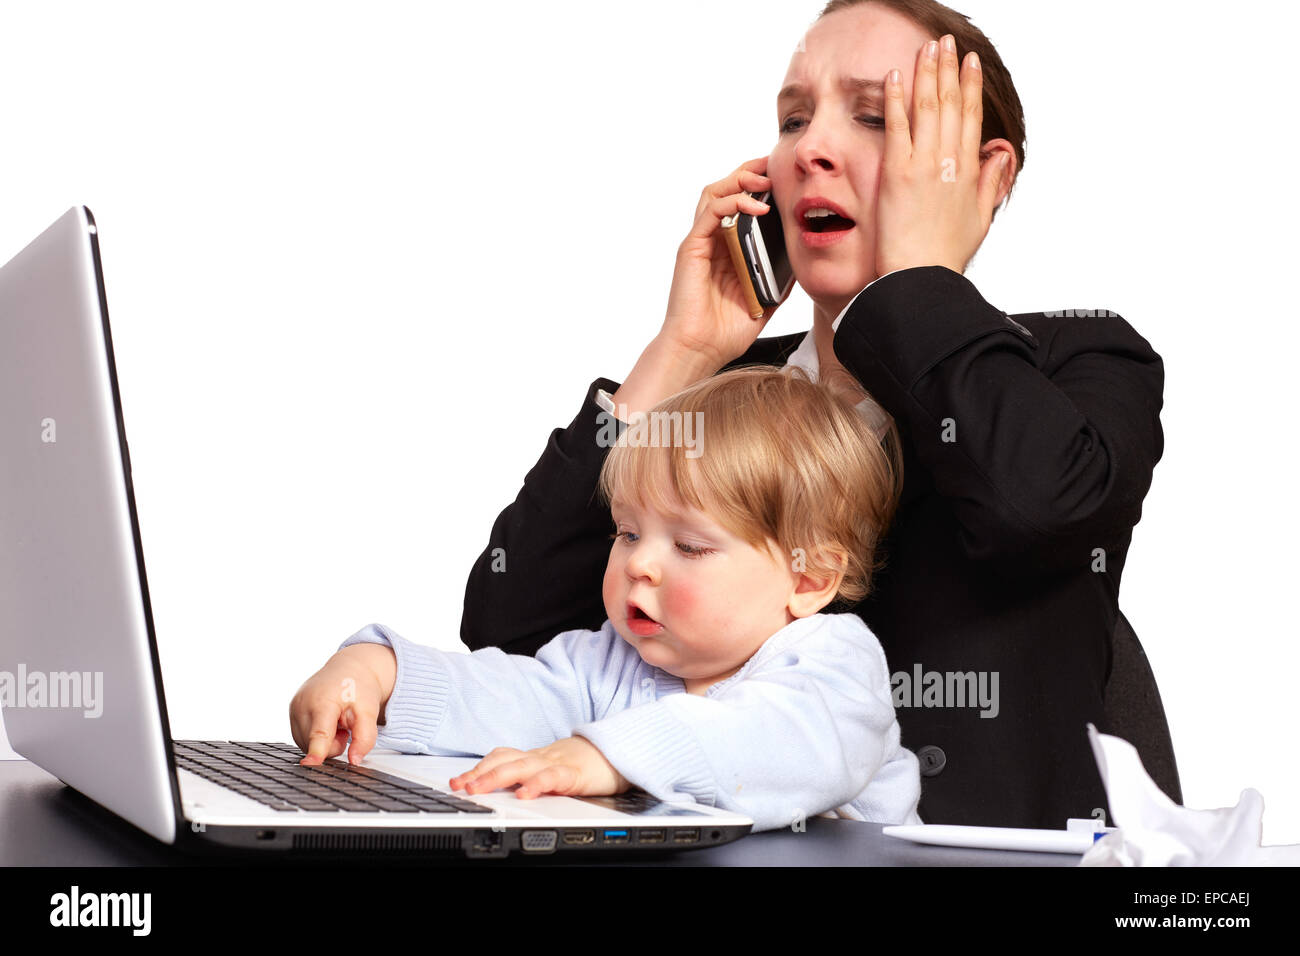 Mother and child at work - Stock Image